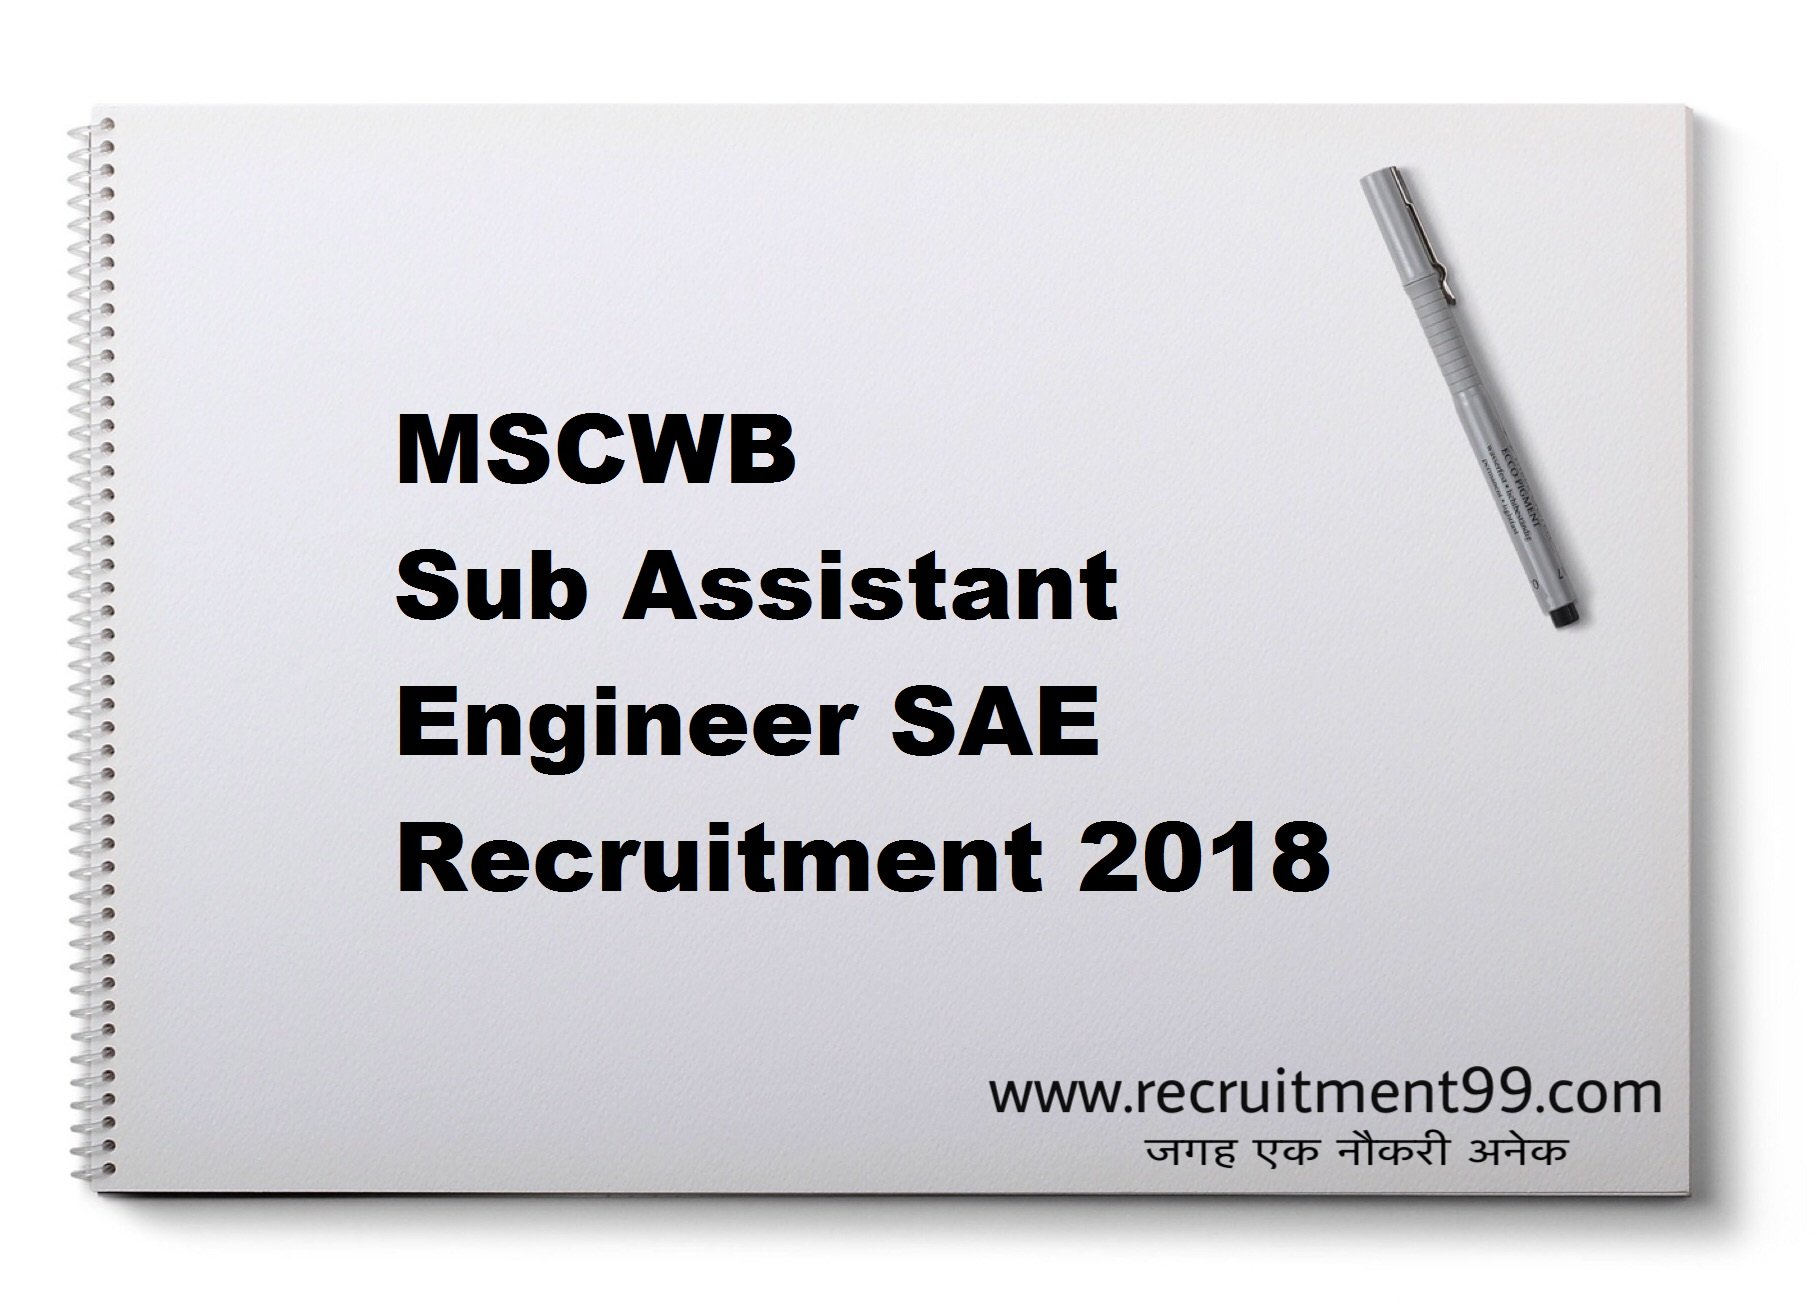 MSCWB Sub Assistant Engineer SAE Recruitment Admit Card Result 2018